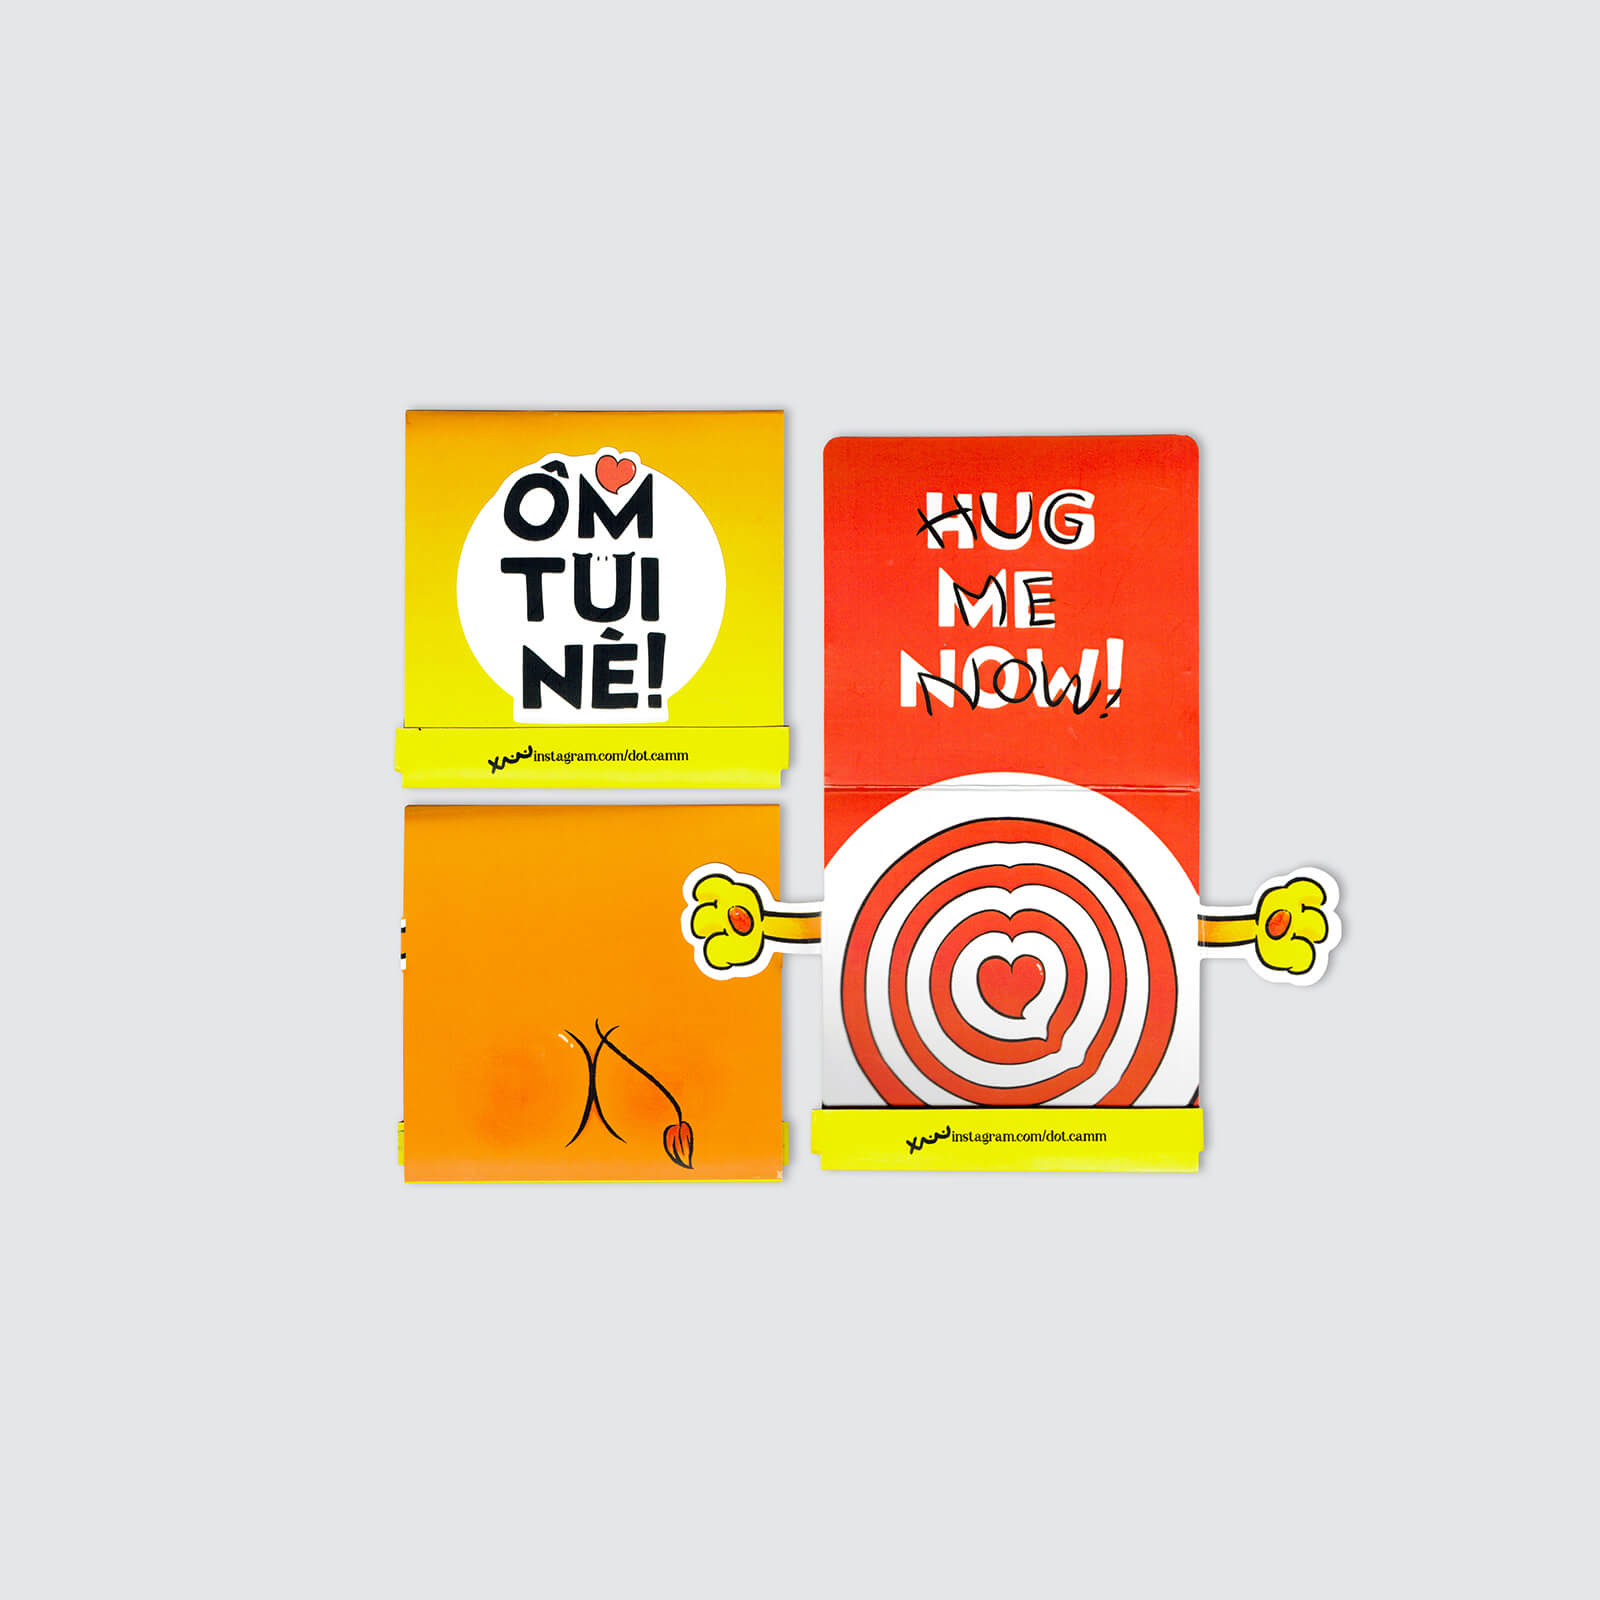 ÔM TUI NÈ! Sticker Pack